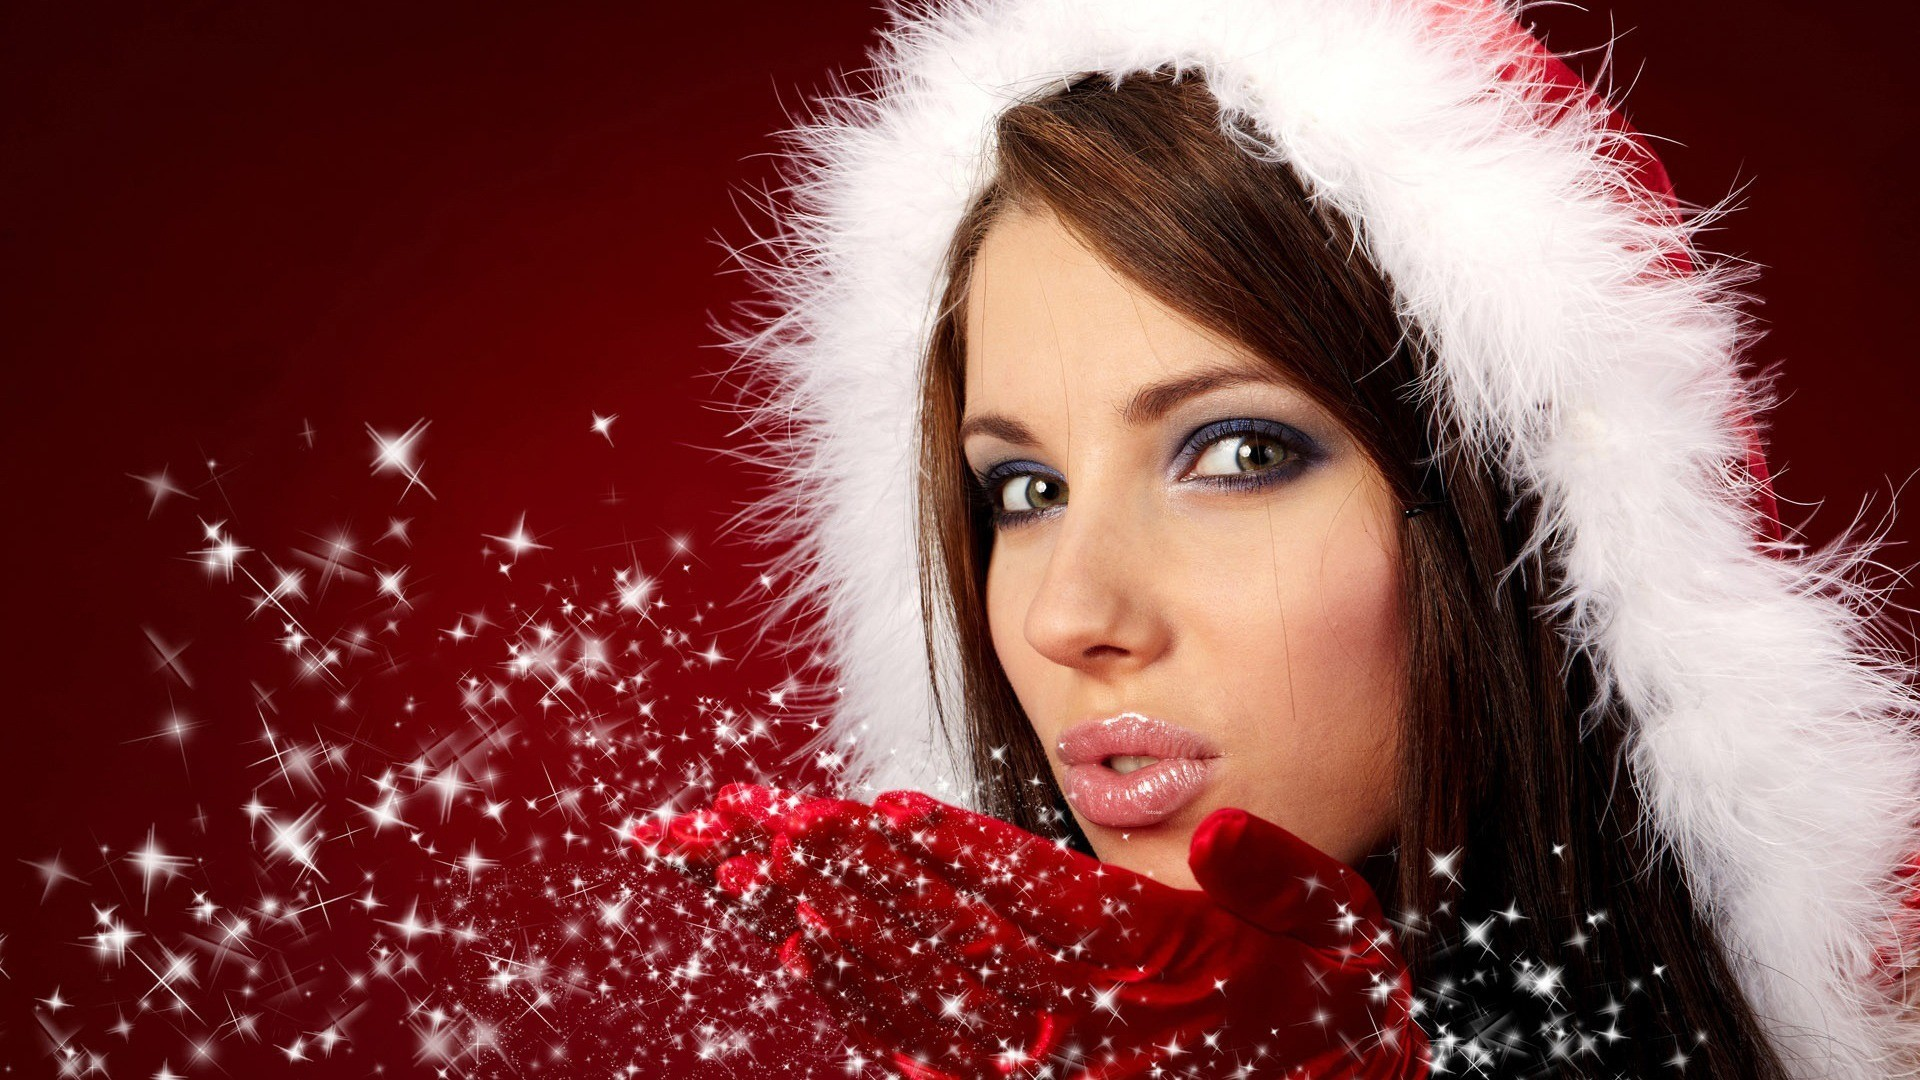 woman red santa claus HD Wallpaper